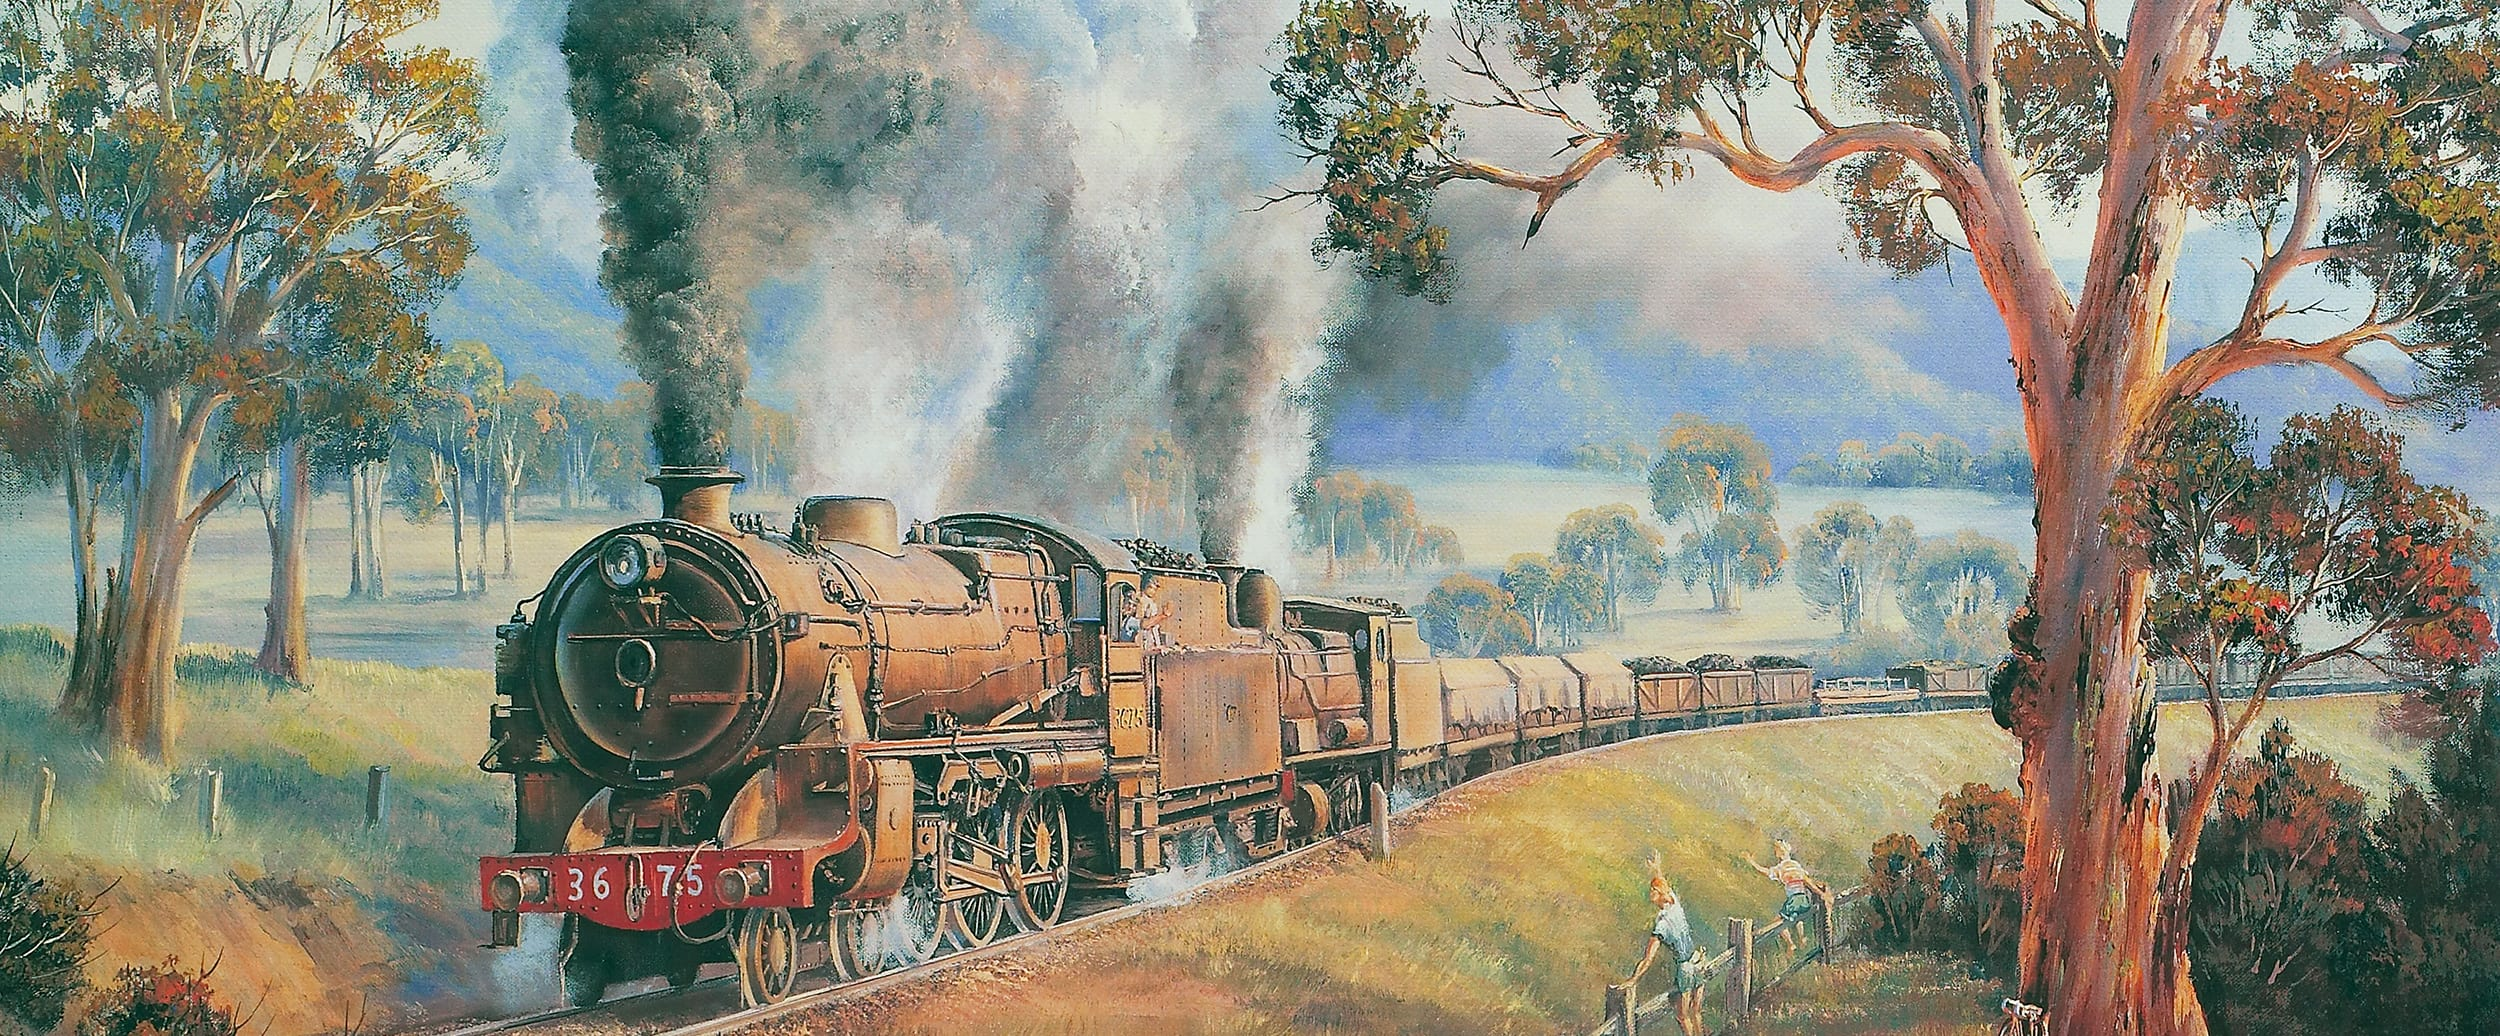 John Bradley Train Oil Painting